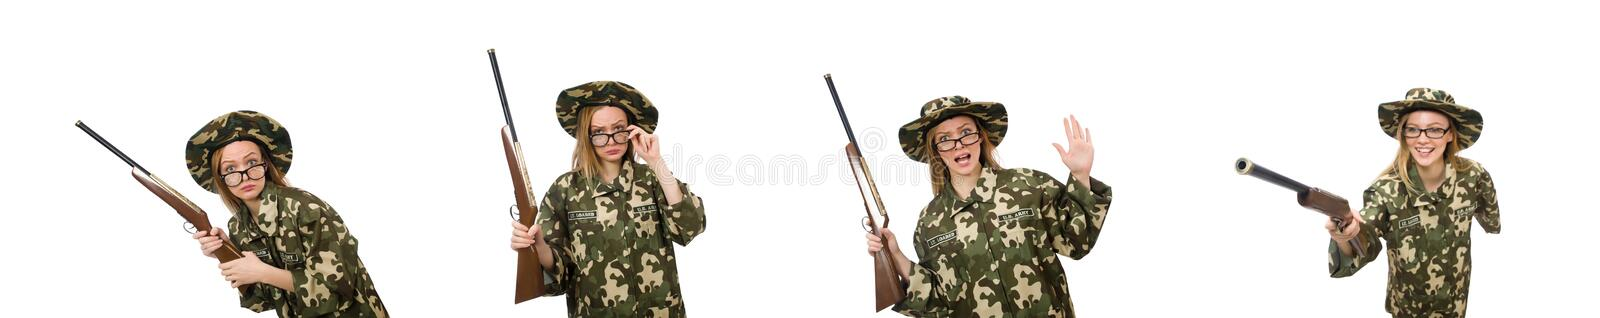 The girl in military uniform holding the gun isolated on white stock images